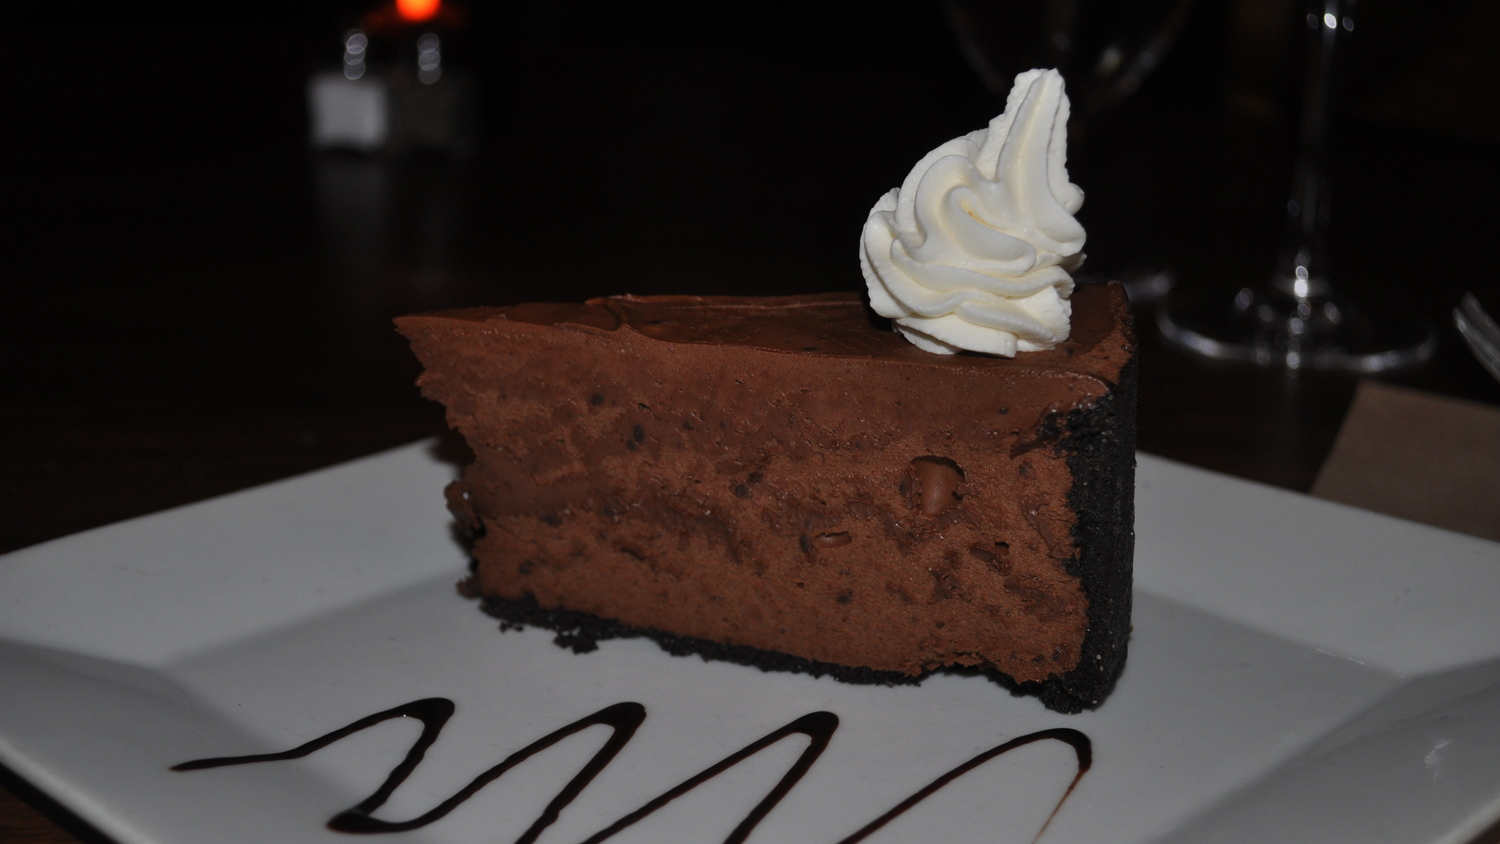 Finish a meal with semi-sweet Valrhona Chocolate Mousse Cake.